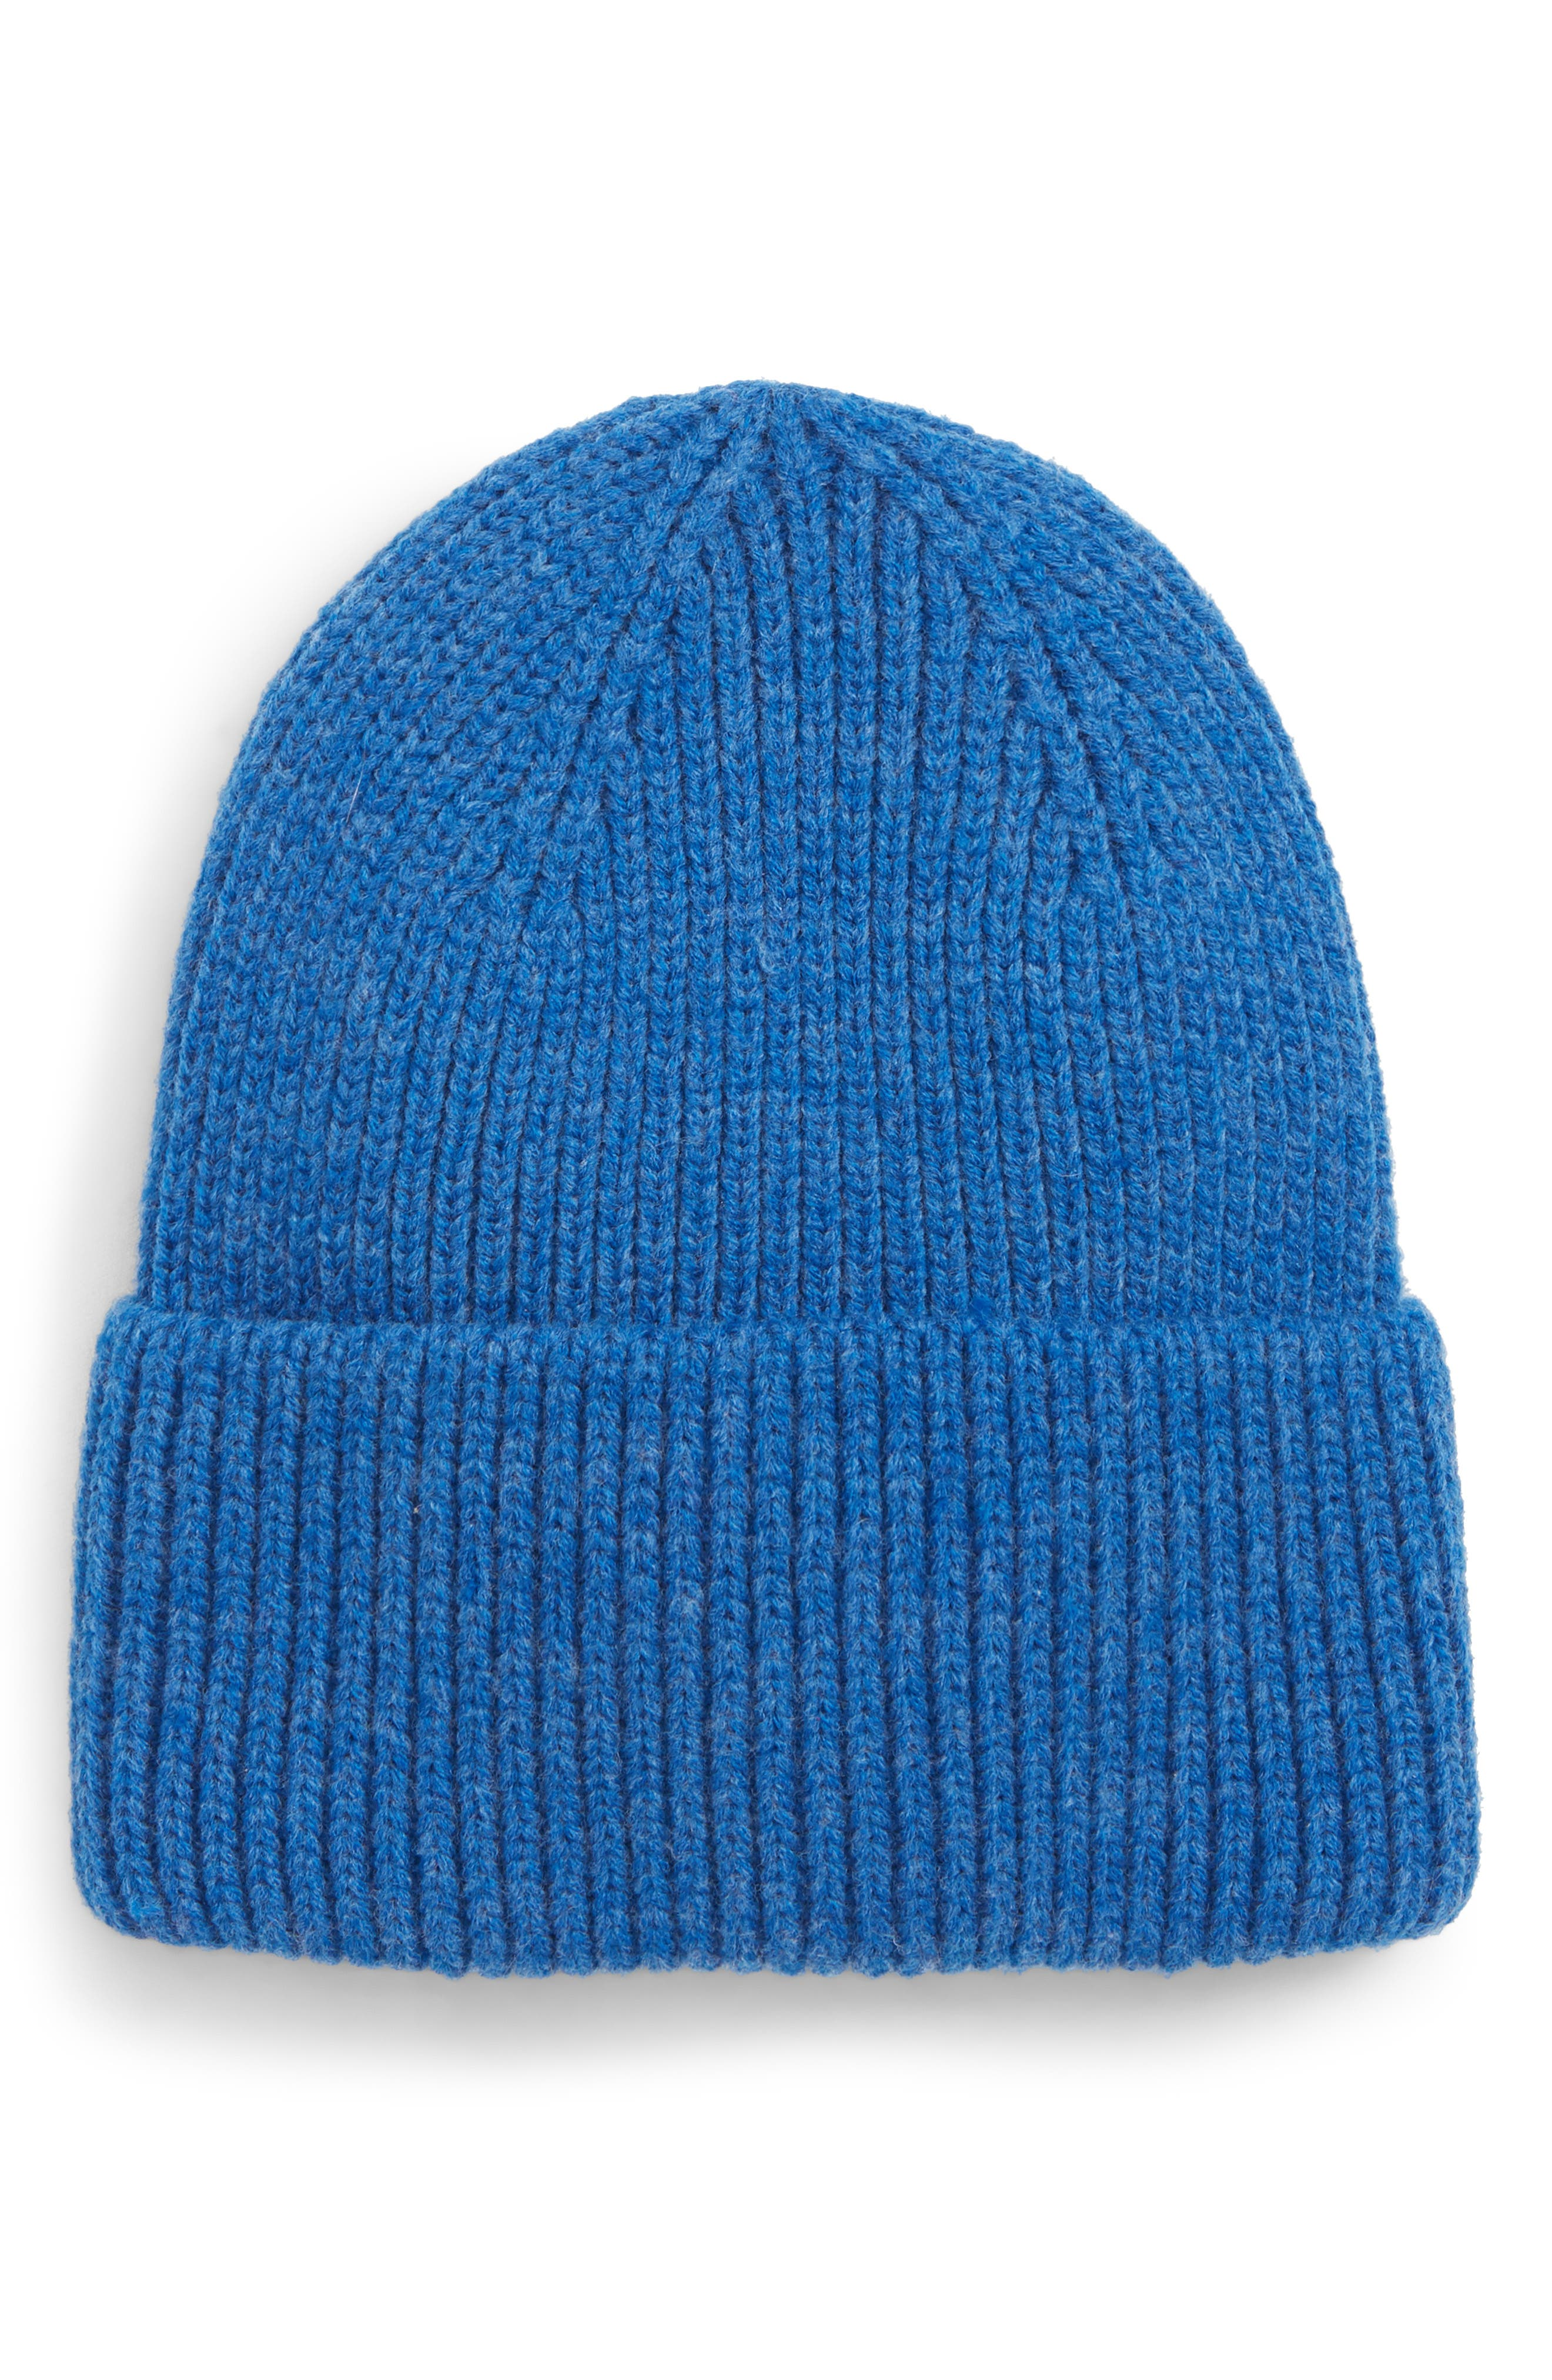 Cuff Beanie,                             Main thumbnail 1, color,                             BLUE CAMP